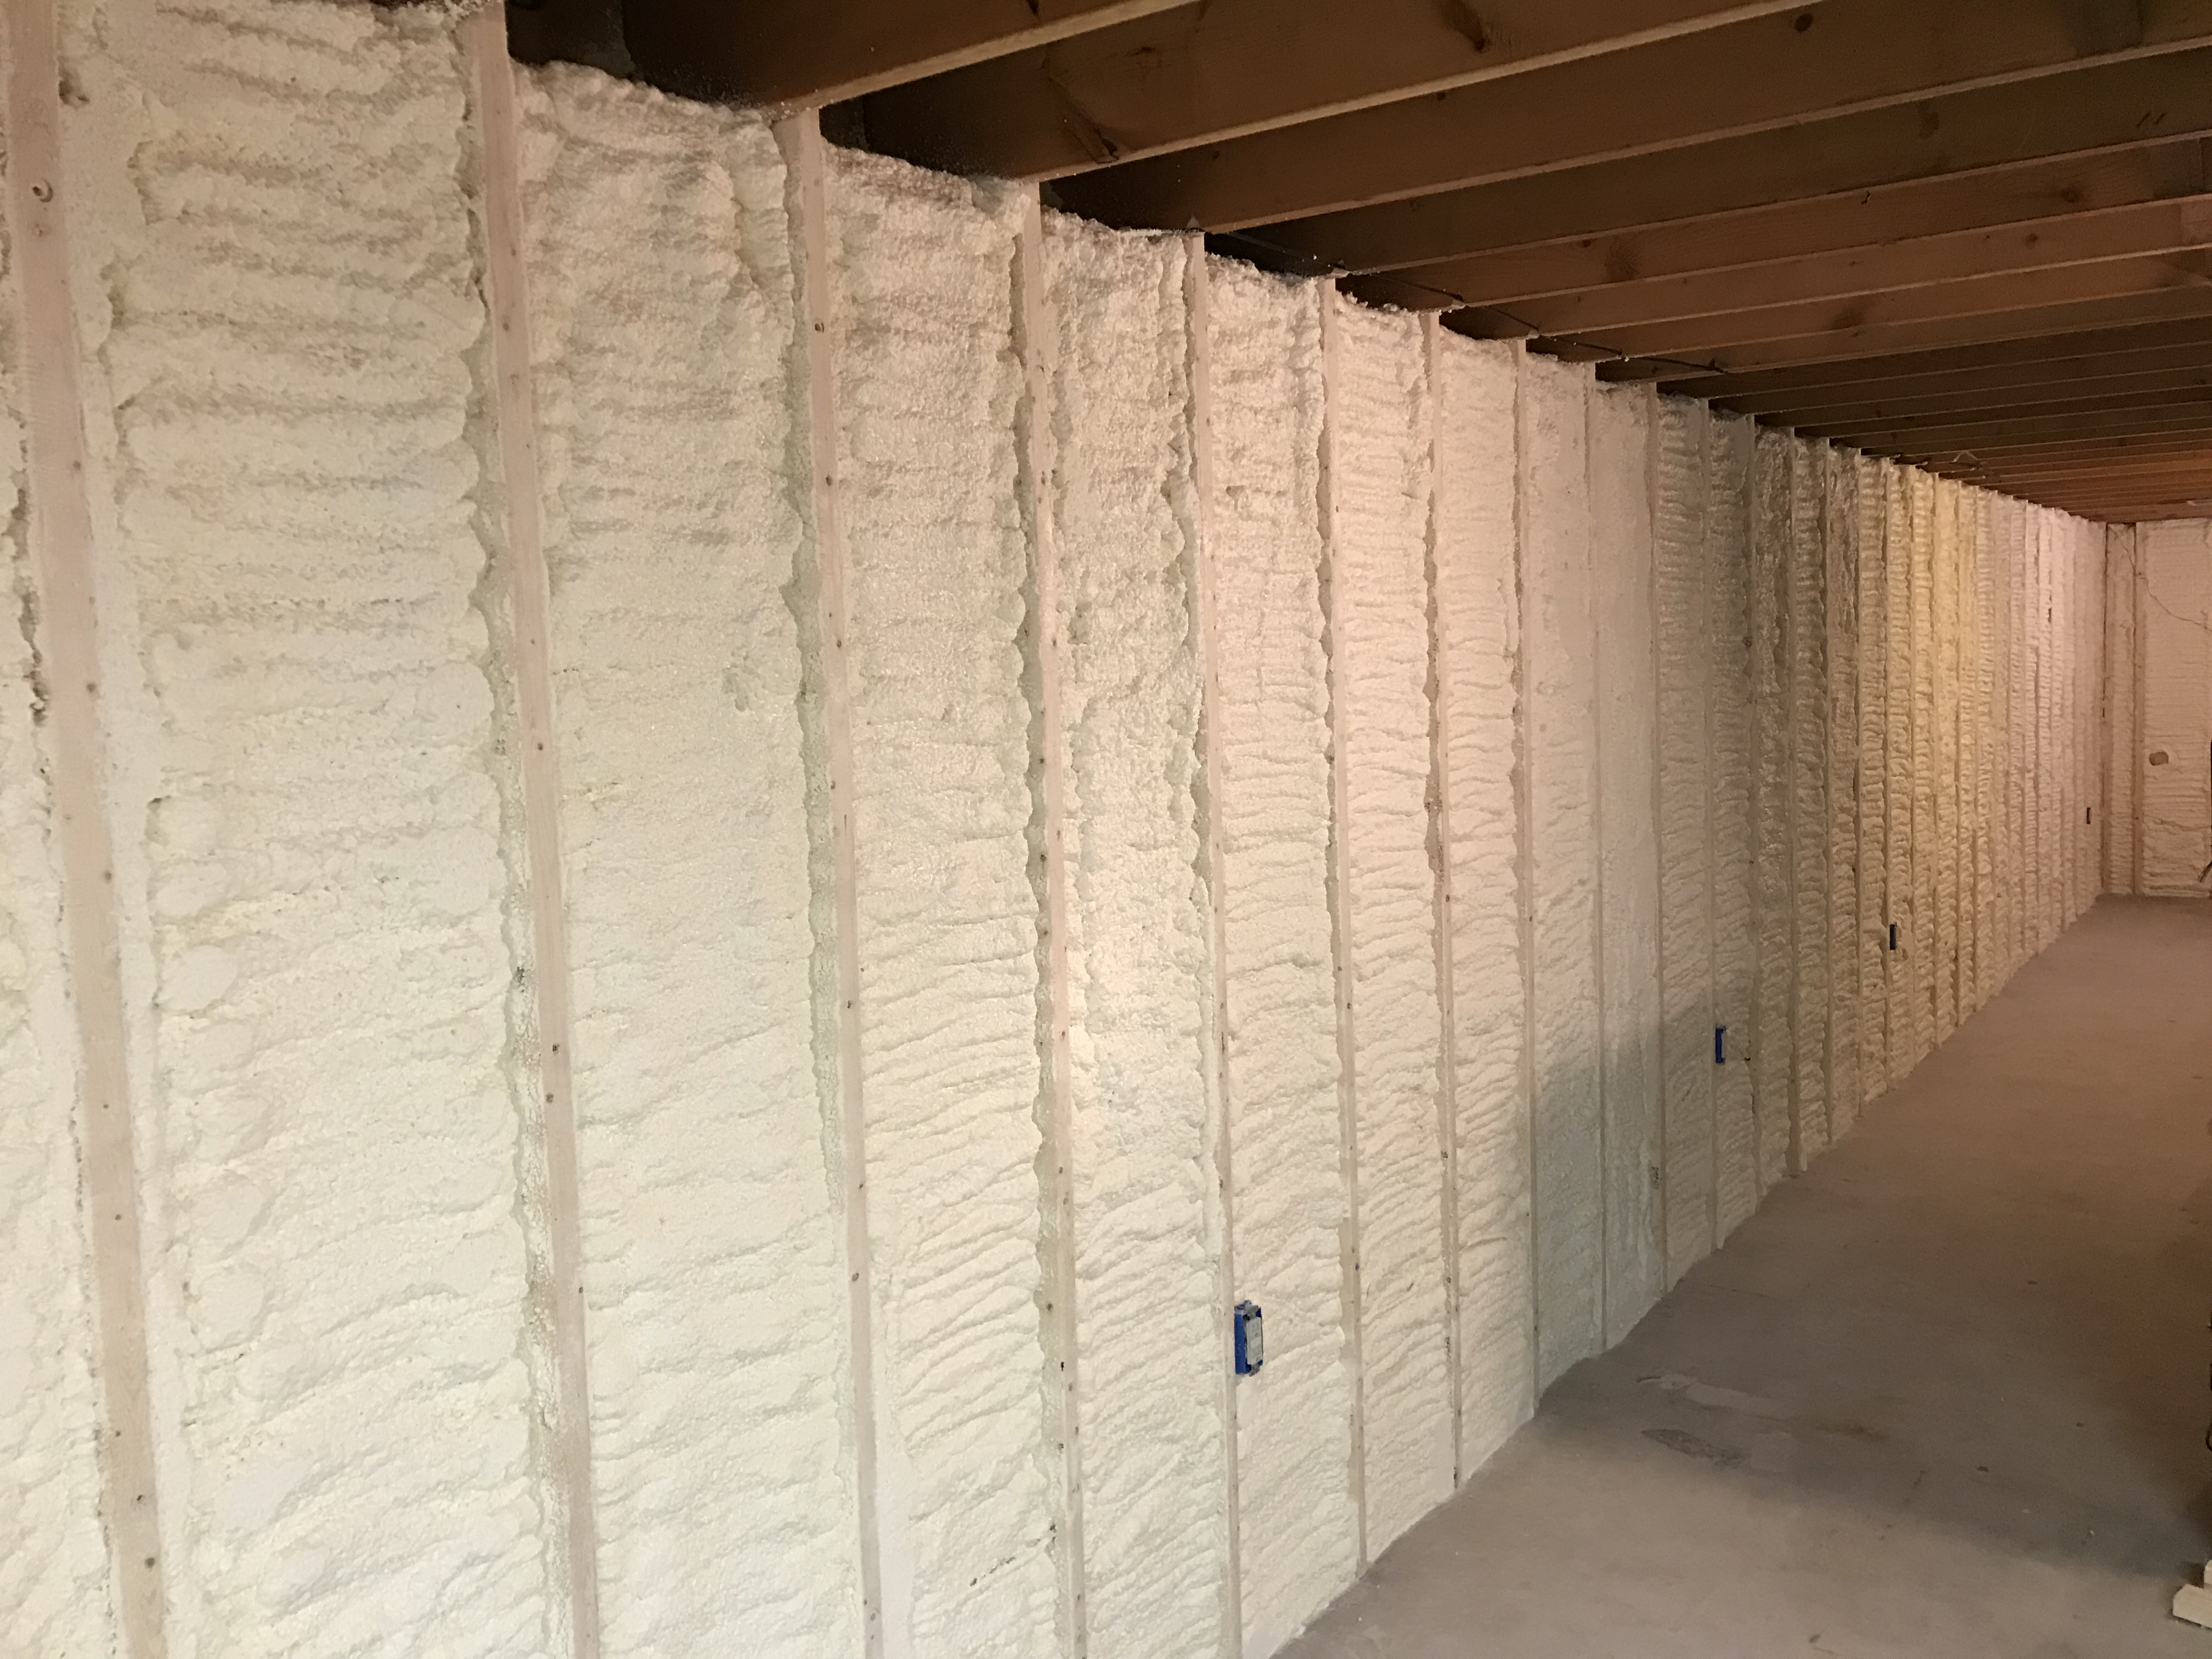 Spray Foam Insulation For Basement Walls Best Methods For